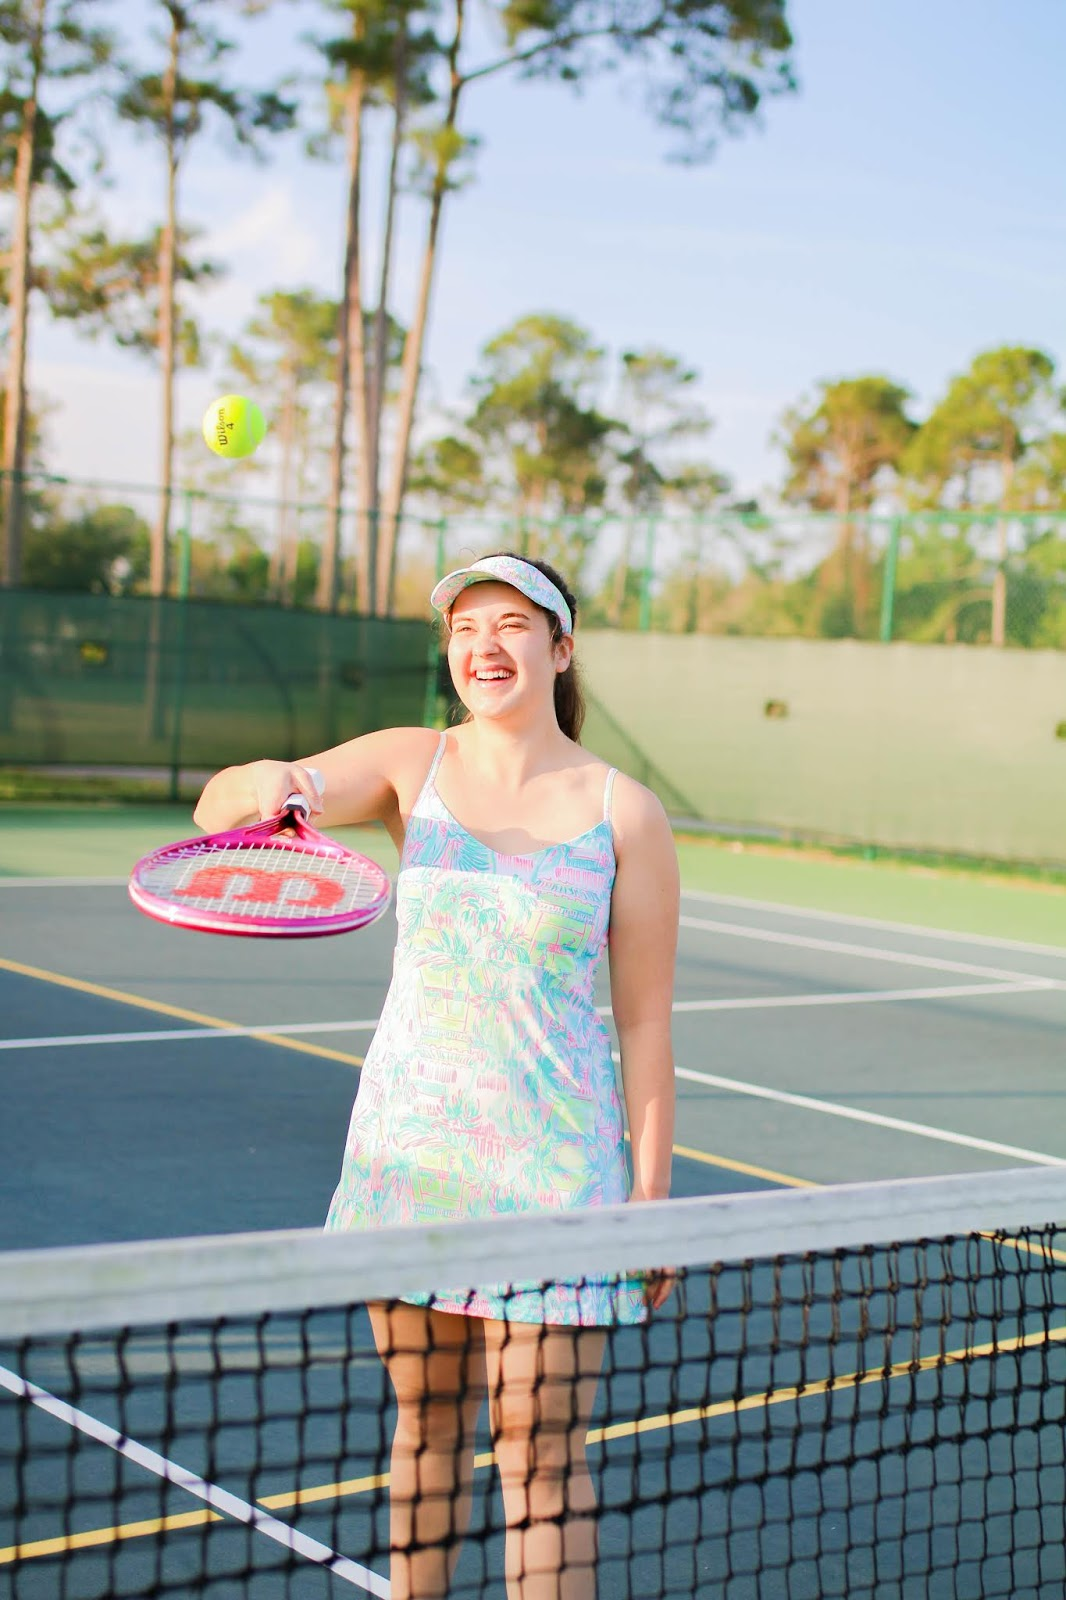 Brunette girl wearing Lilly Pulitzer tennis dress and hat and playing tennis at tennis courts with Wilson tennis racket